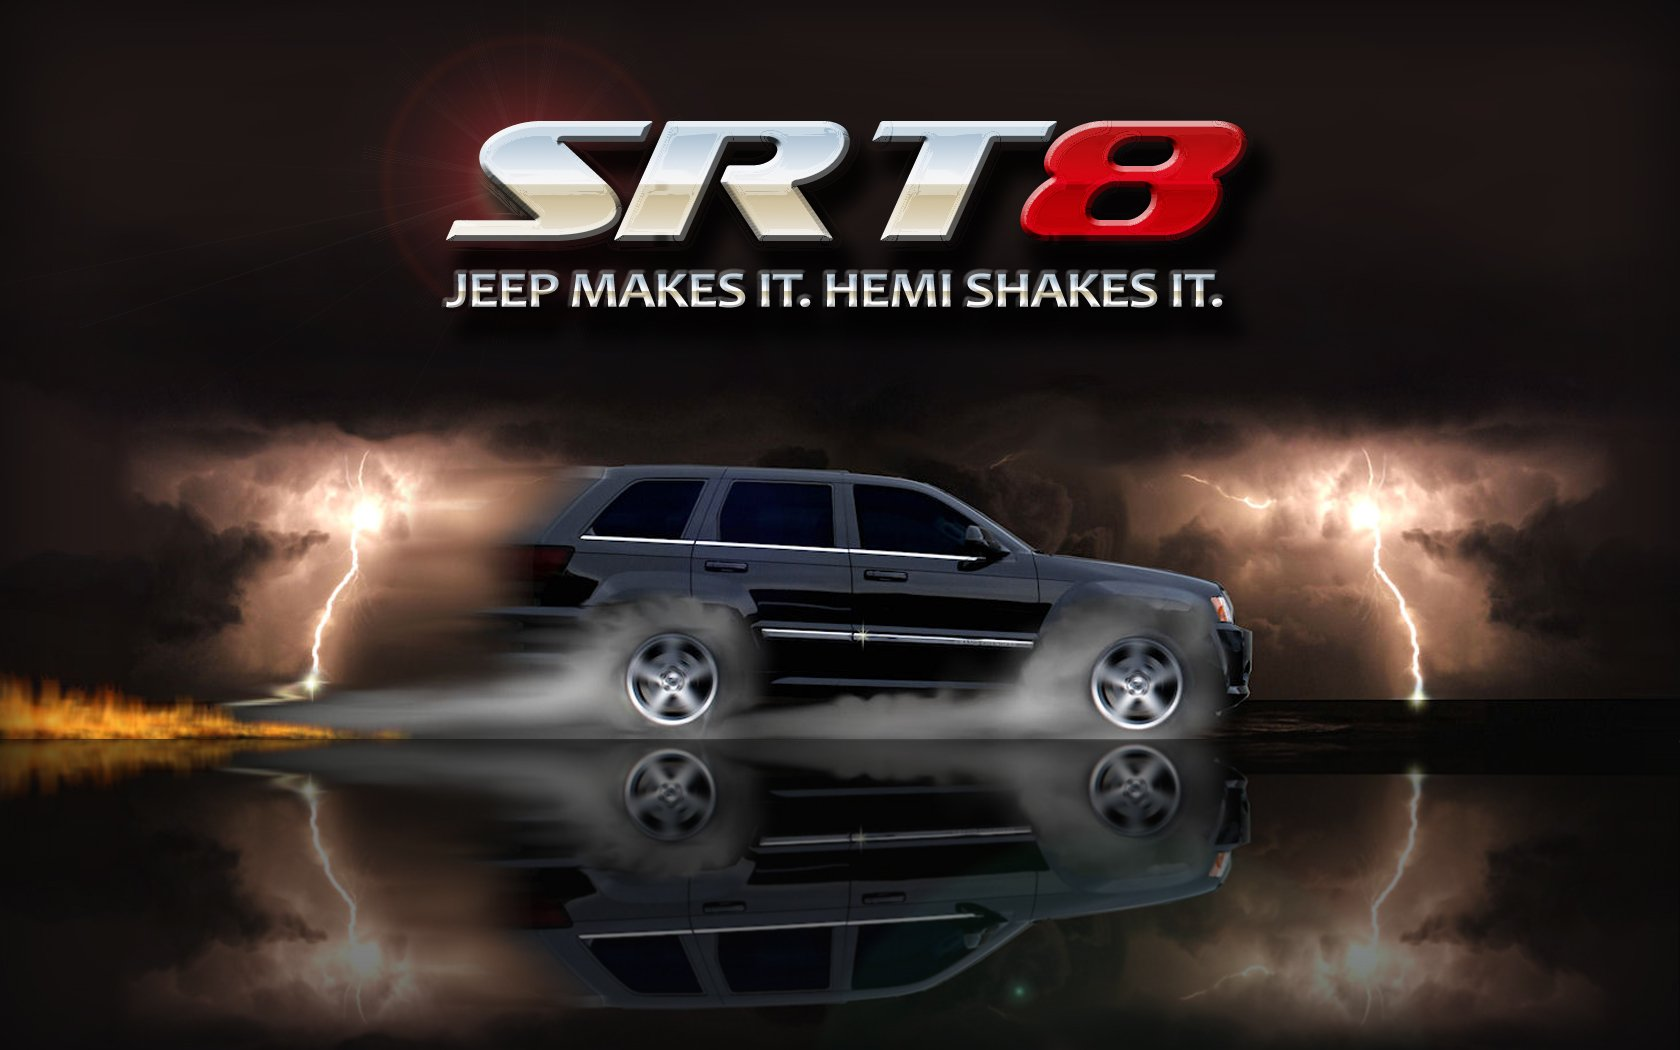 Srt Logo Wallpaper Images Pictures   Becuo 1680x1050